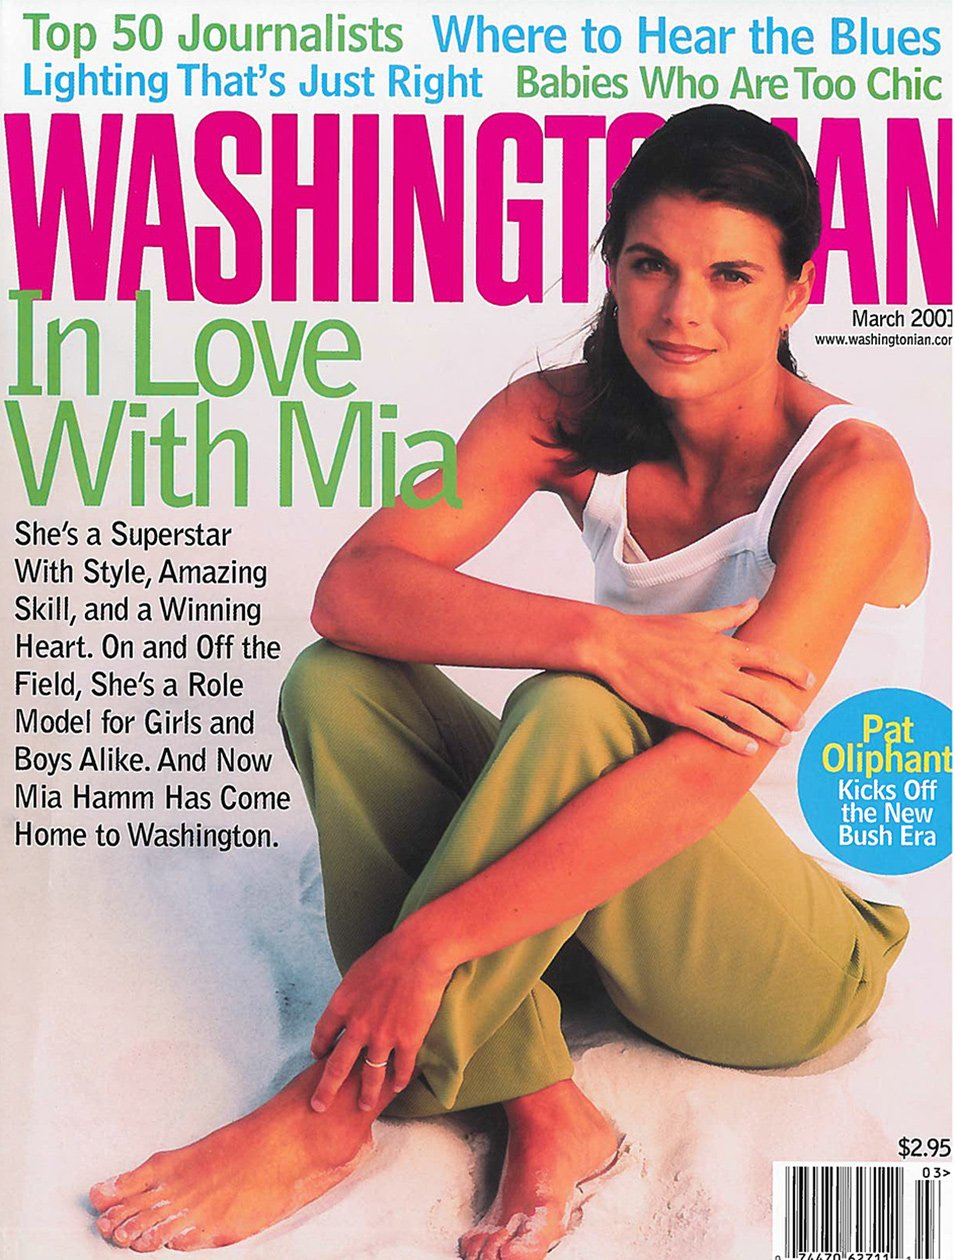 Remembering Mia Hamm's Time in Washington